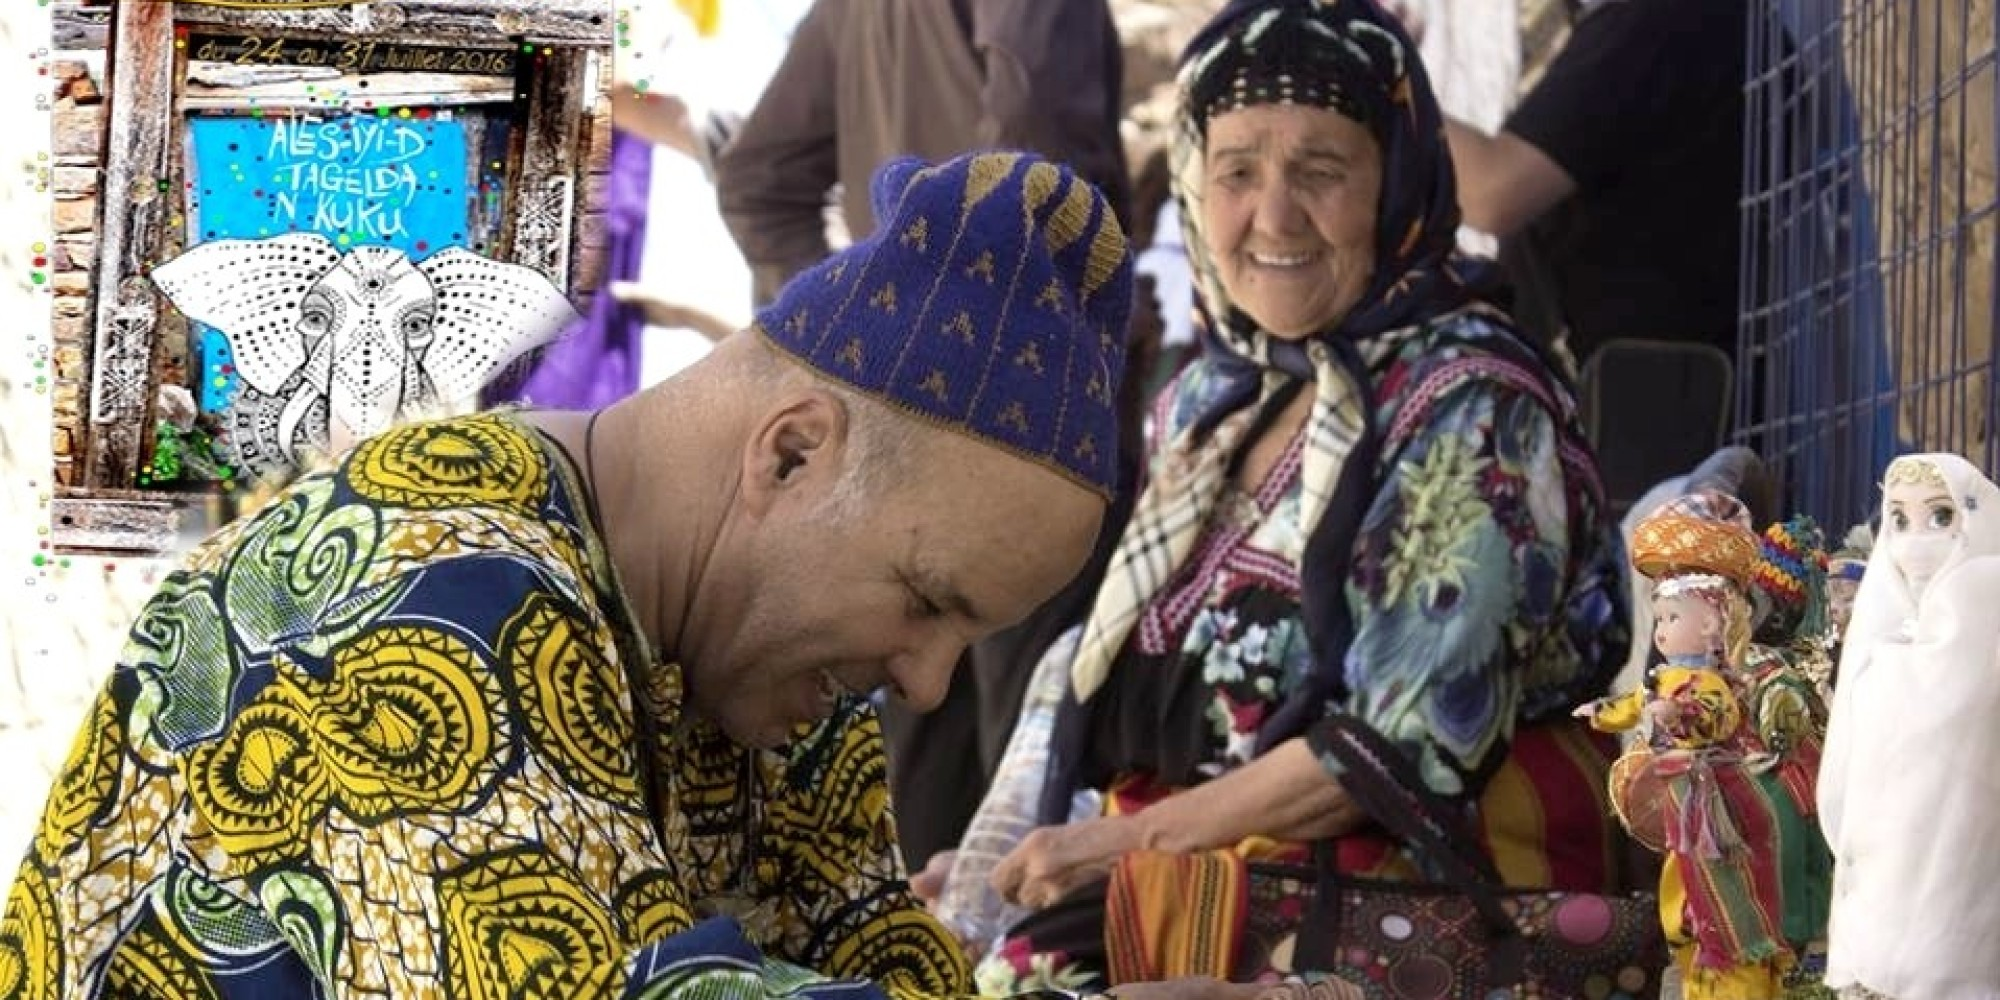 maghreb in love rencontres arabe maghrebines et musulmanes